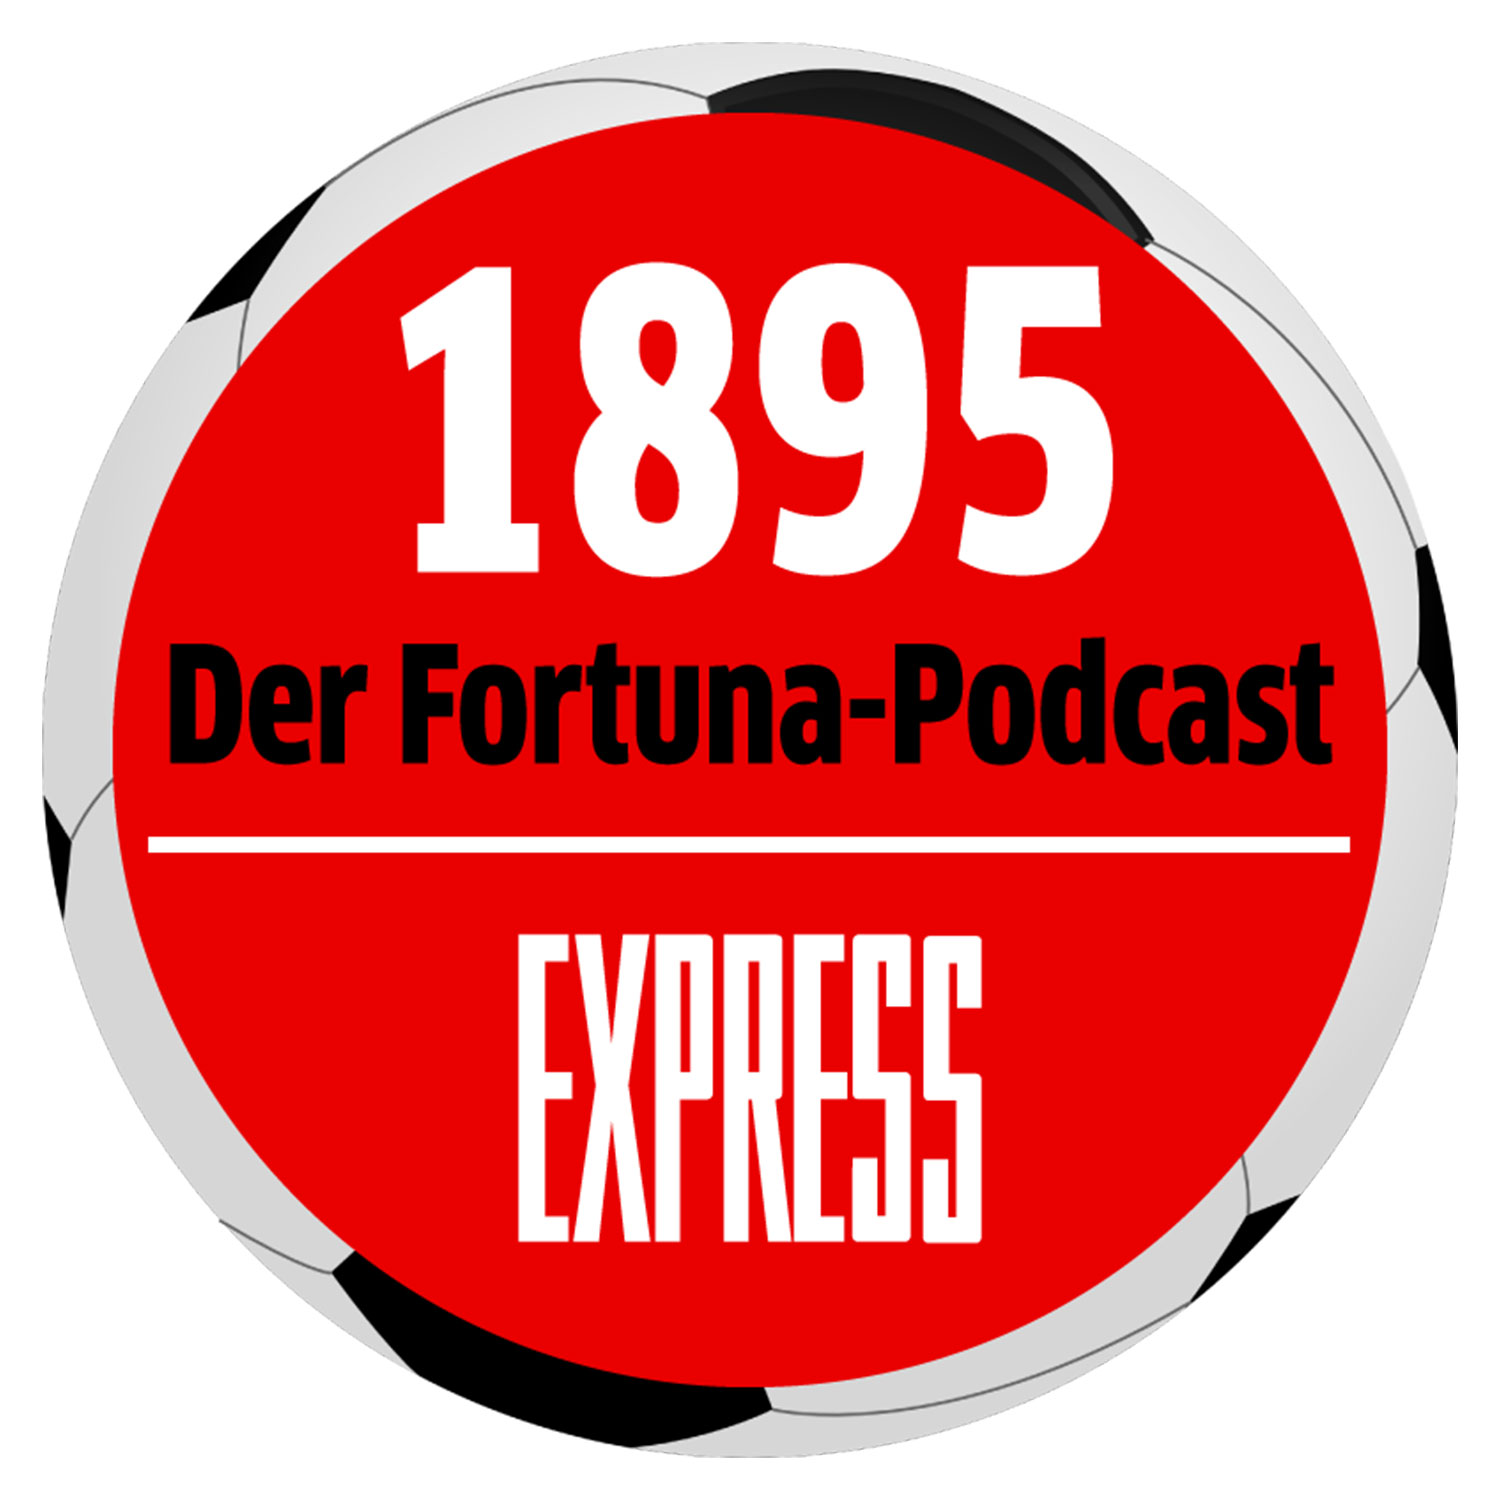 1895, der Fortuna-Podcast